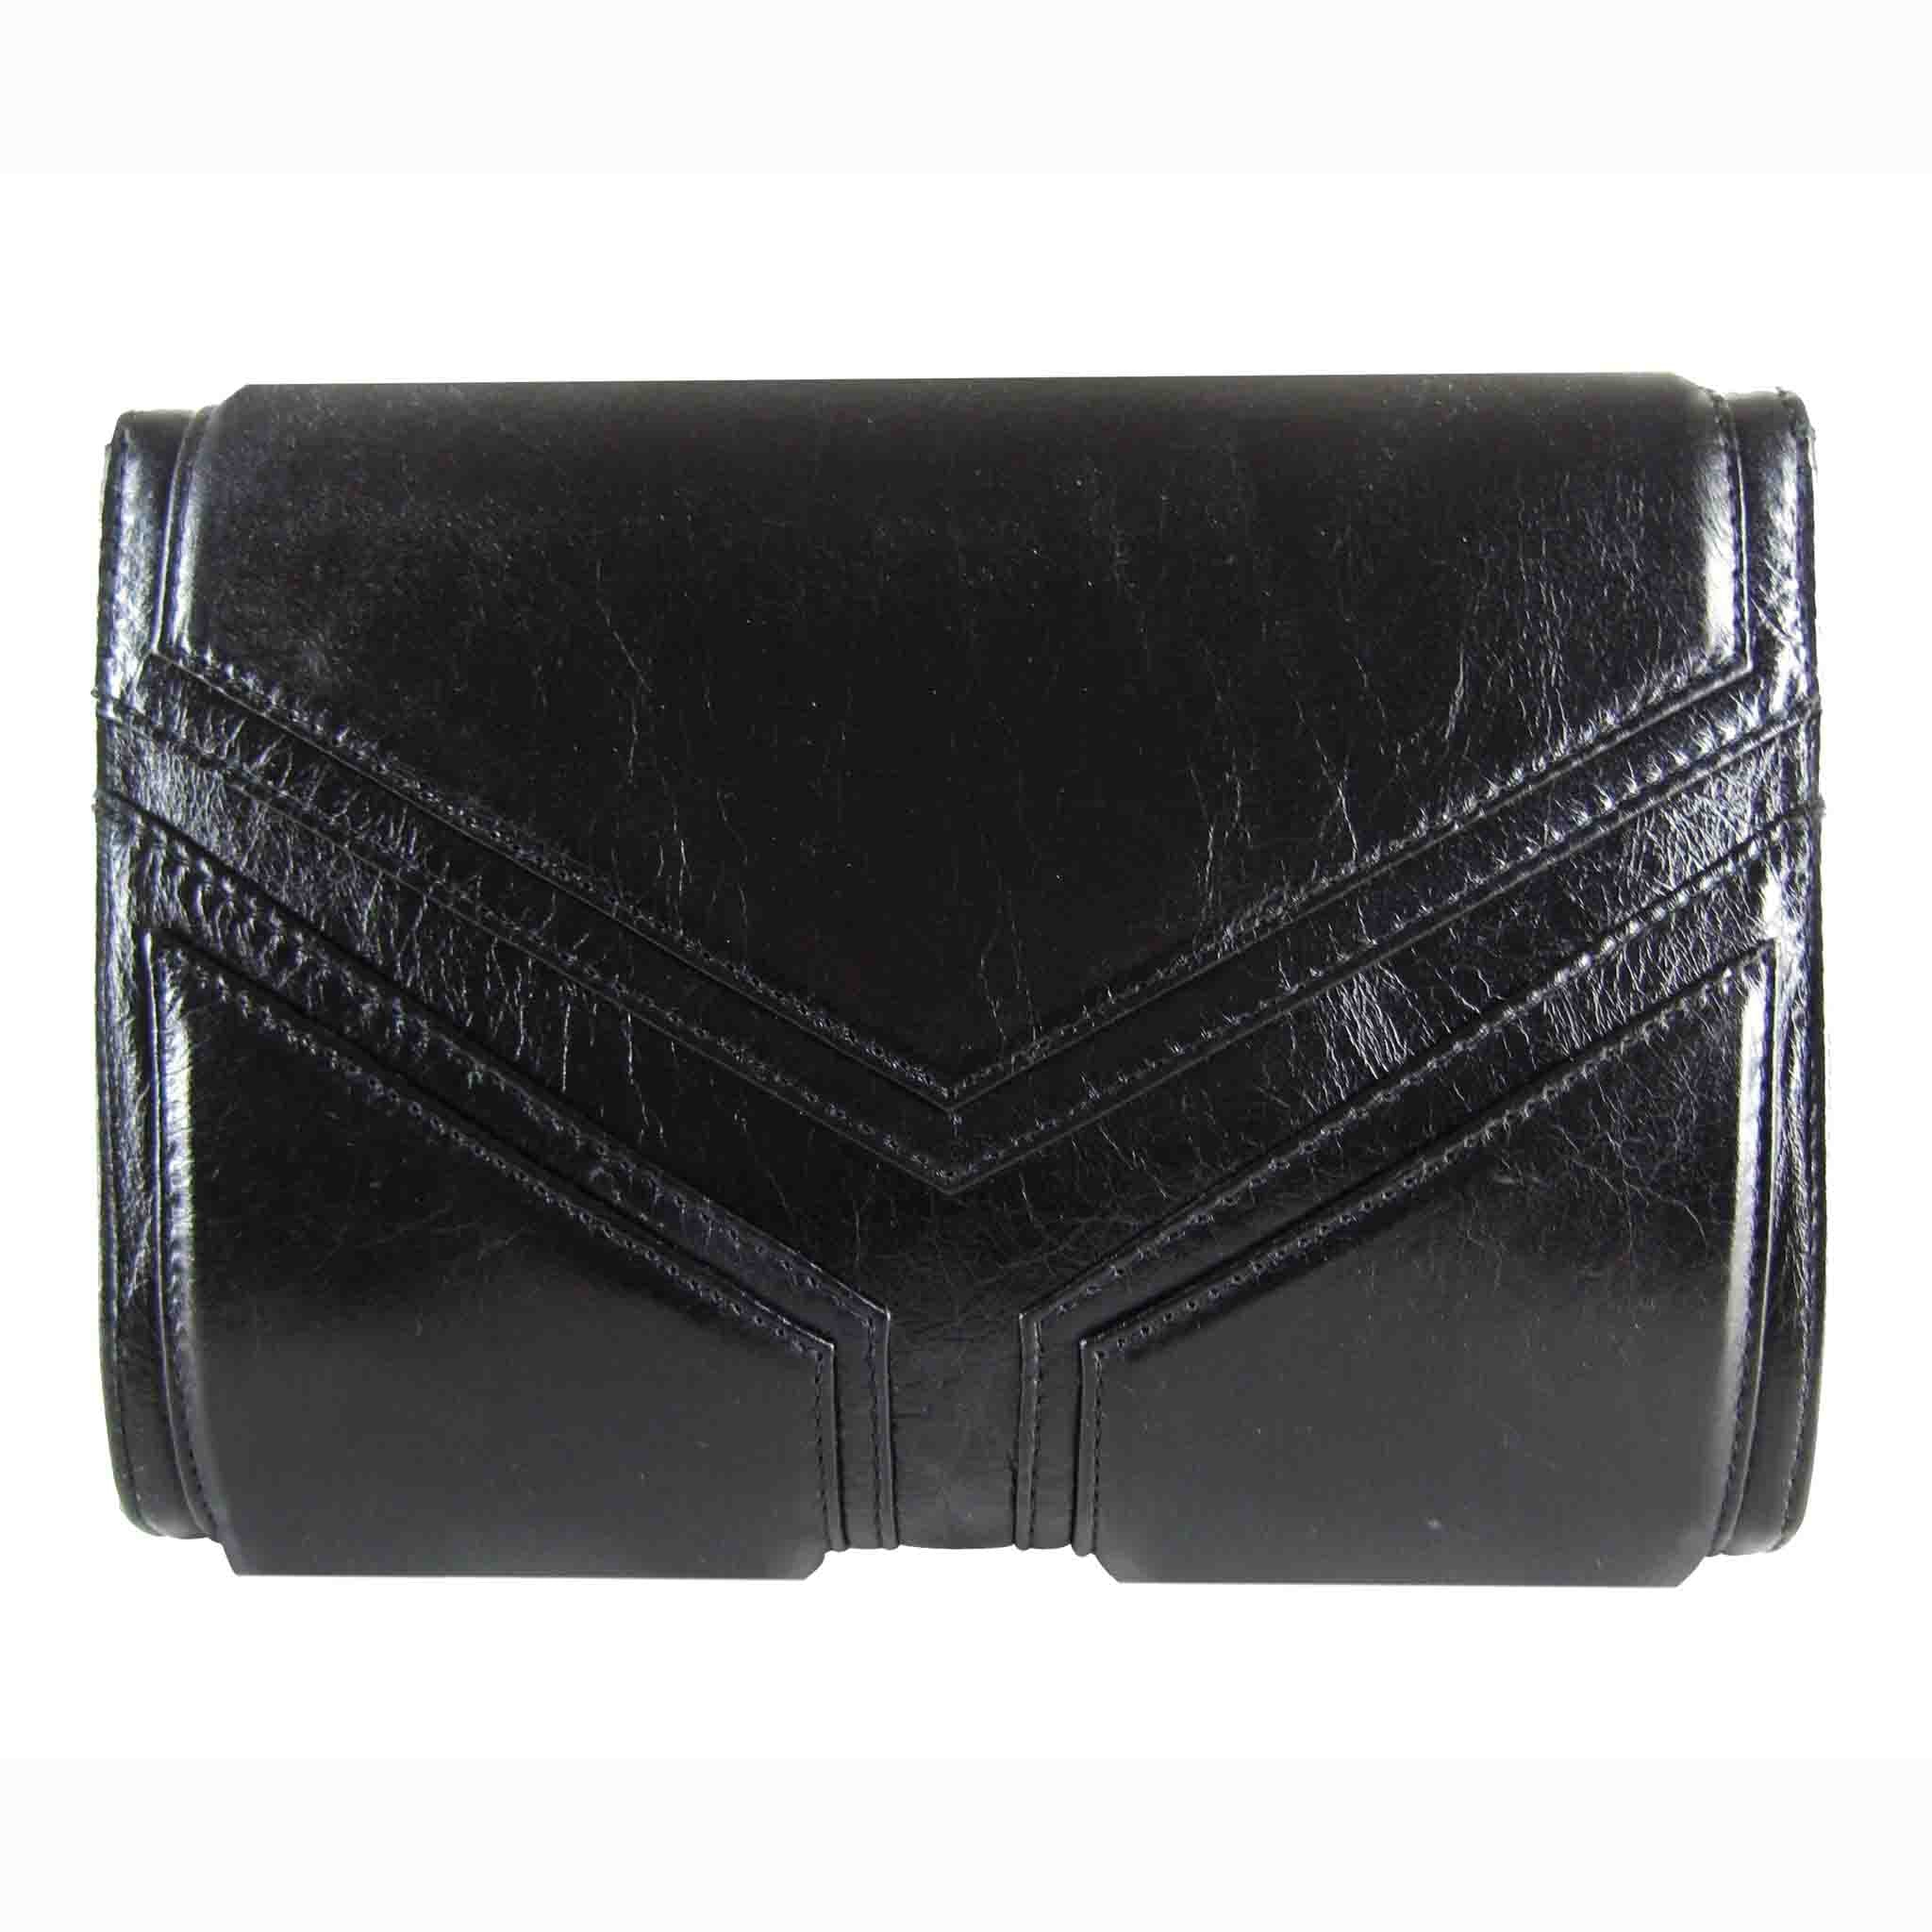 BLACK LEATHER WOMEN'S DREICK CLUTCH